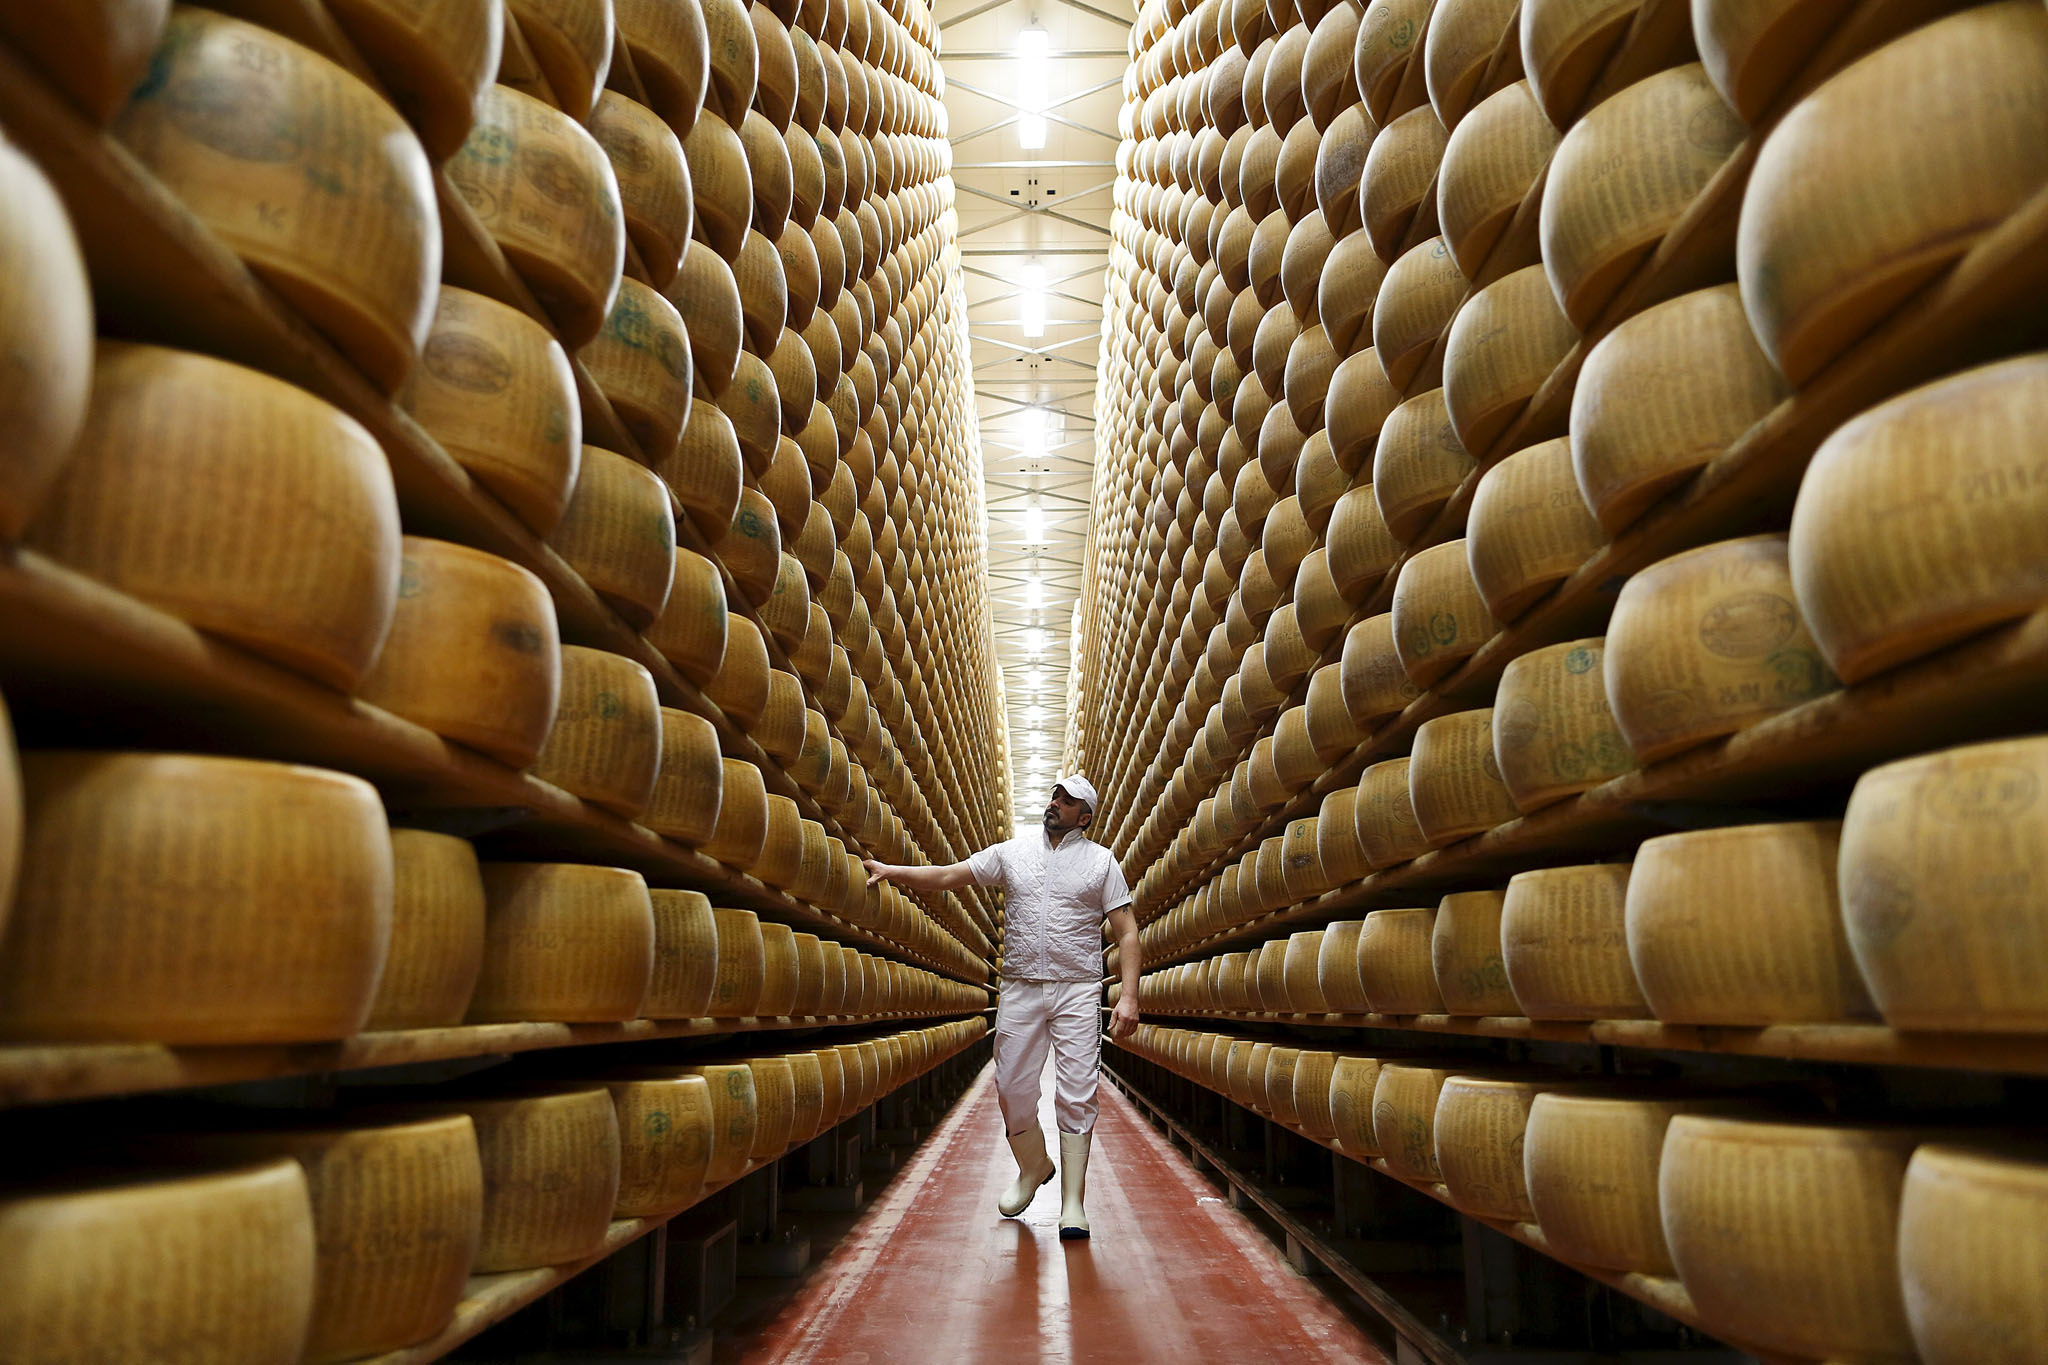 Worker inspects wheel of Parmesan cheese at storehouse shelf 4 Madonne Caseificio dell'Emilia dairy cooperative in Modena, Italy